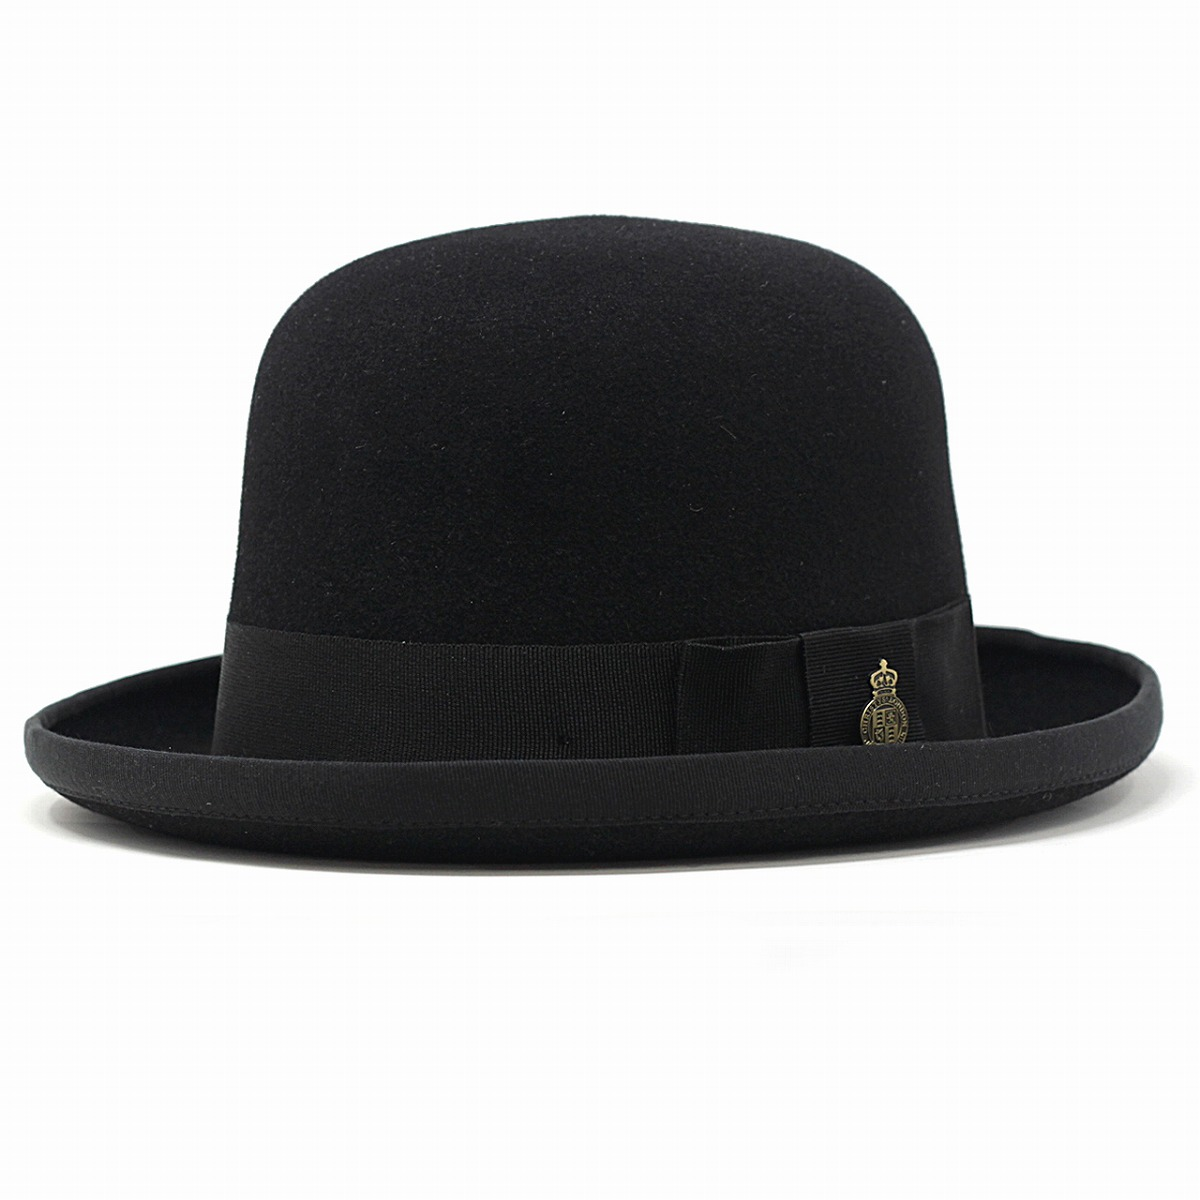 0d2b2f910 High-quality hat CHRISTYS' LONDON gentleman hat 56.5cm 60cm 62cm / black  black [boater hat] [fedora hat] Father's Day gift birthday present present  ...